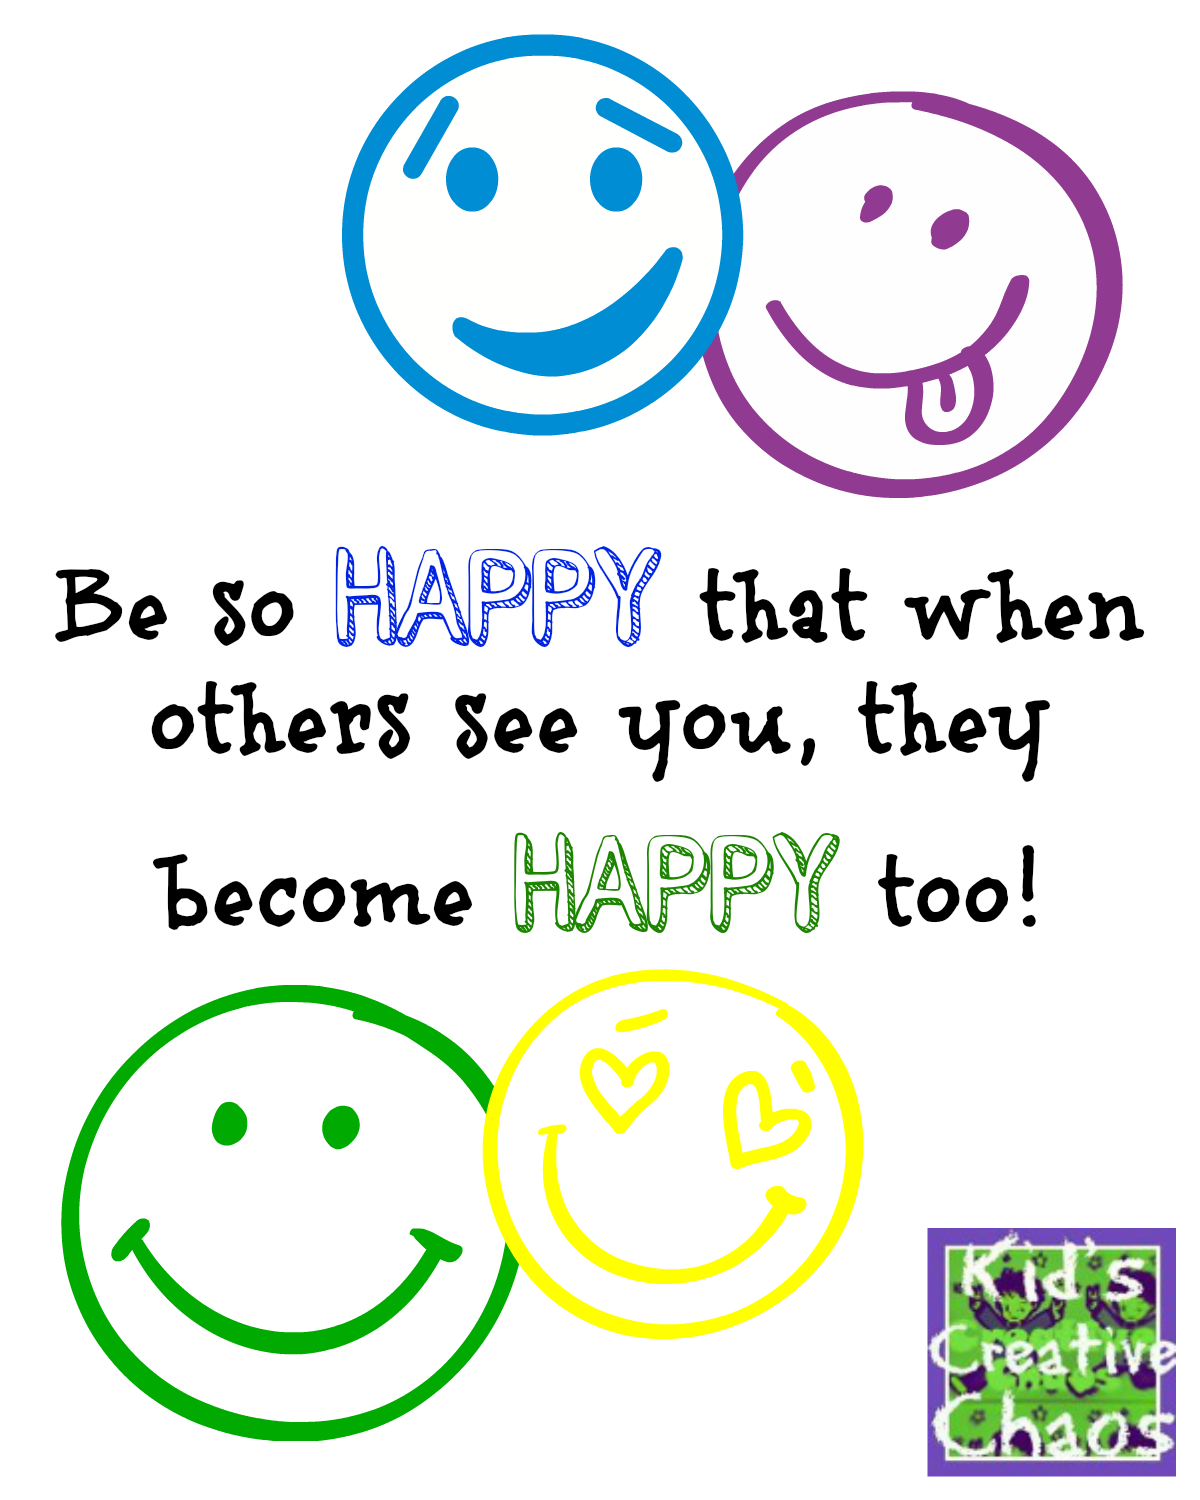 Quotes Happy Be Happy Happiness Quotes And Sayings  Kids Creative Chaos